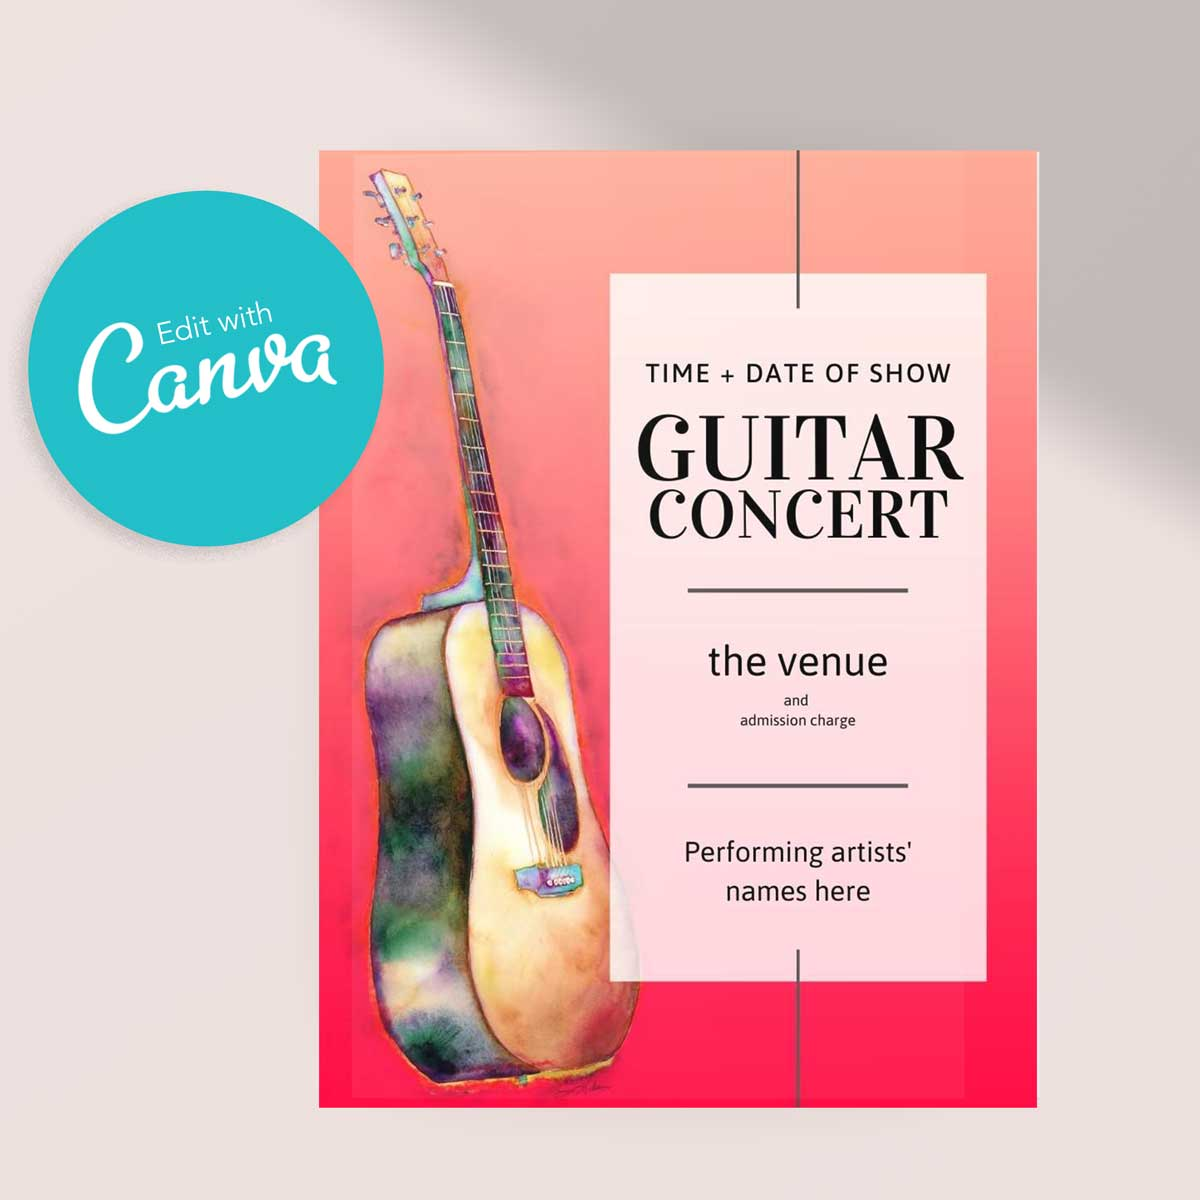 Acoustic Guitar Recital or Concert Poster | Editable Canva Template